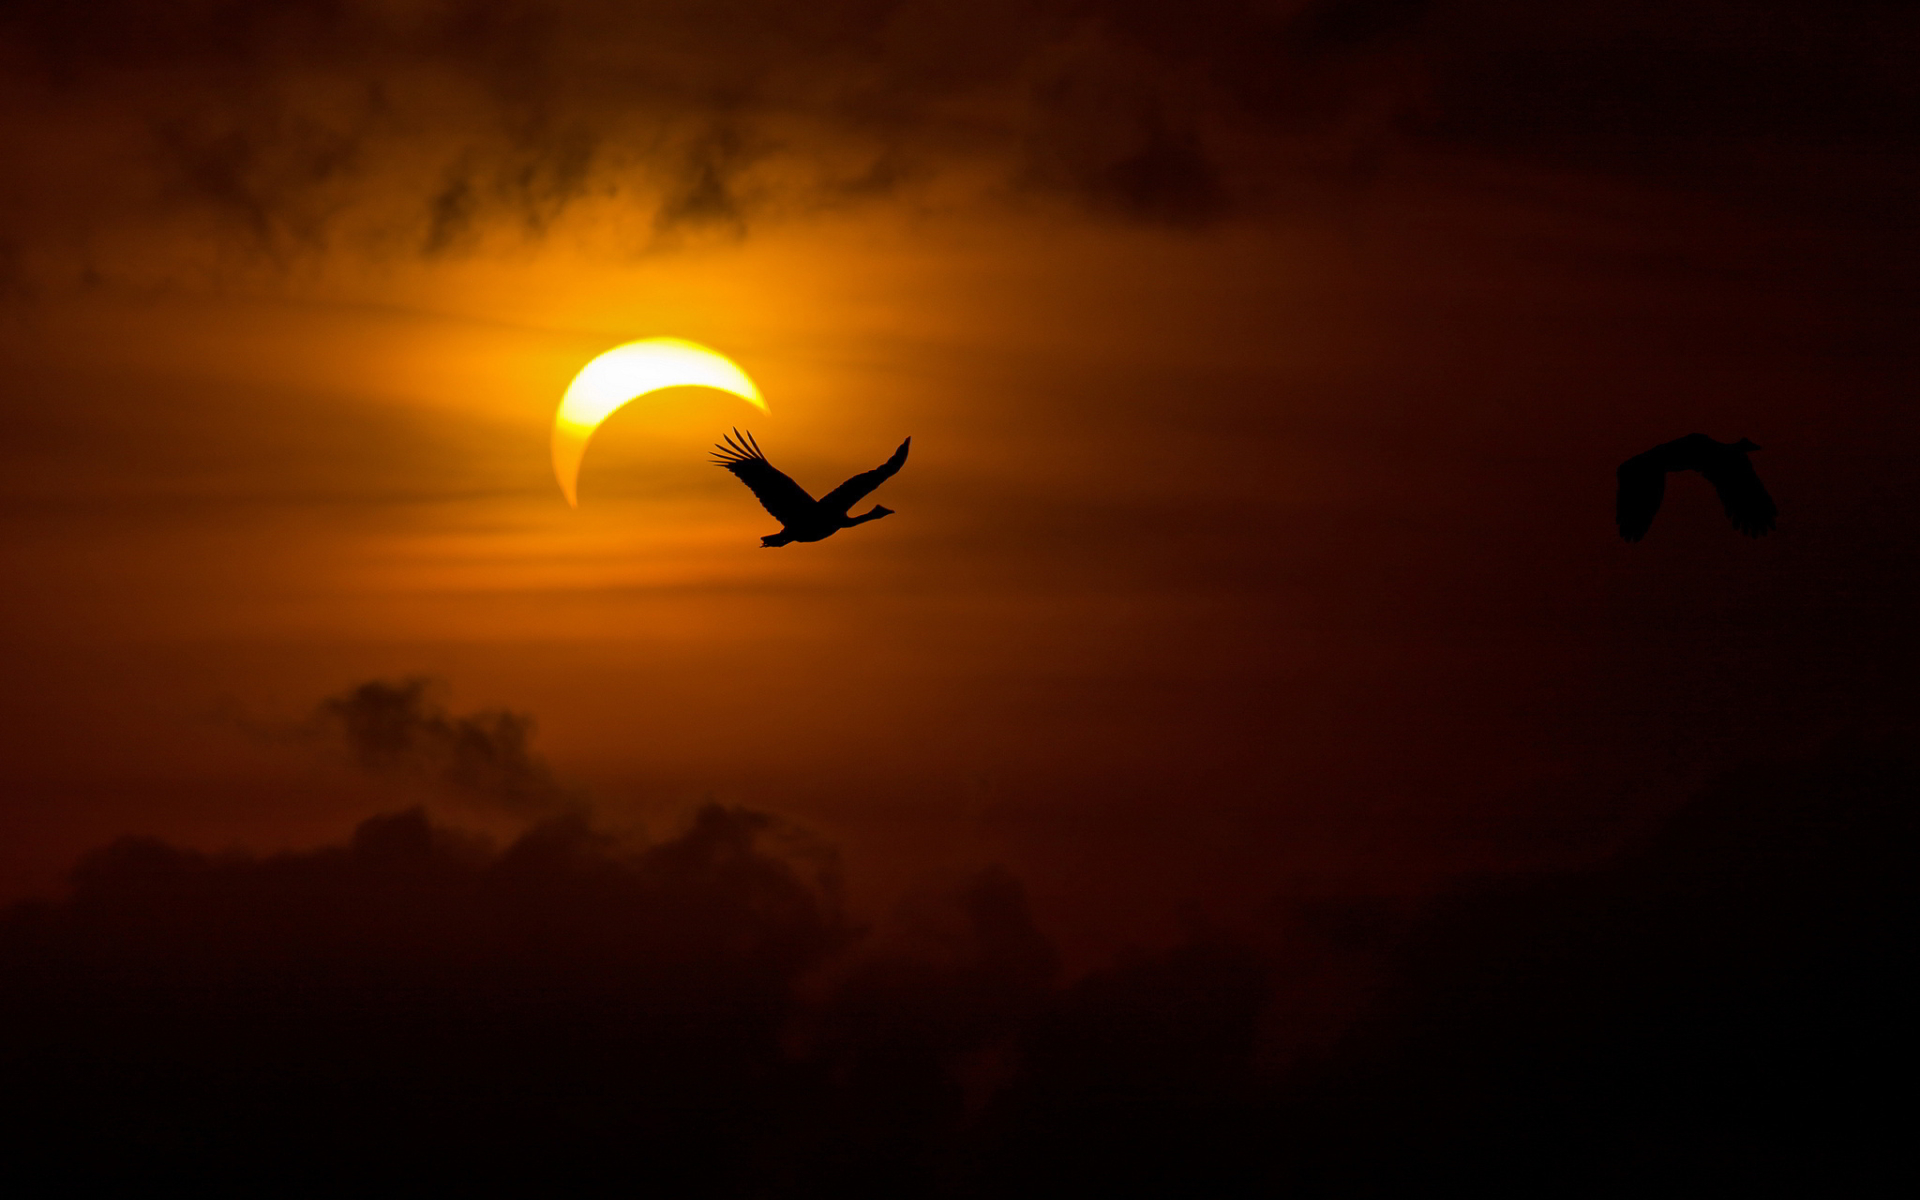 Eclipse in photos